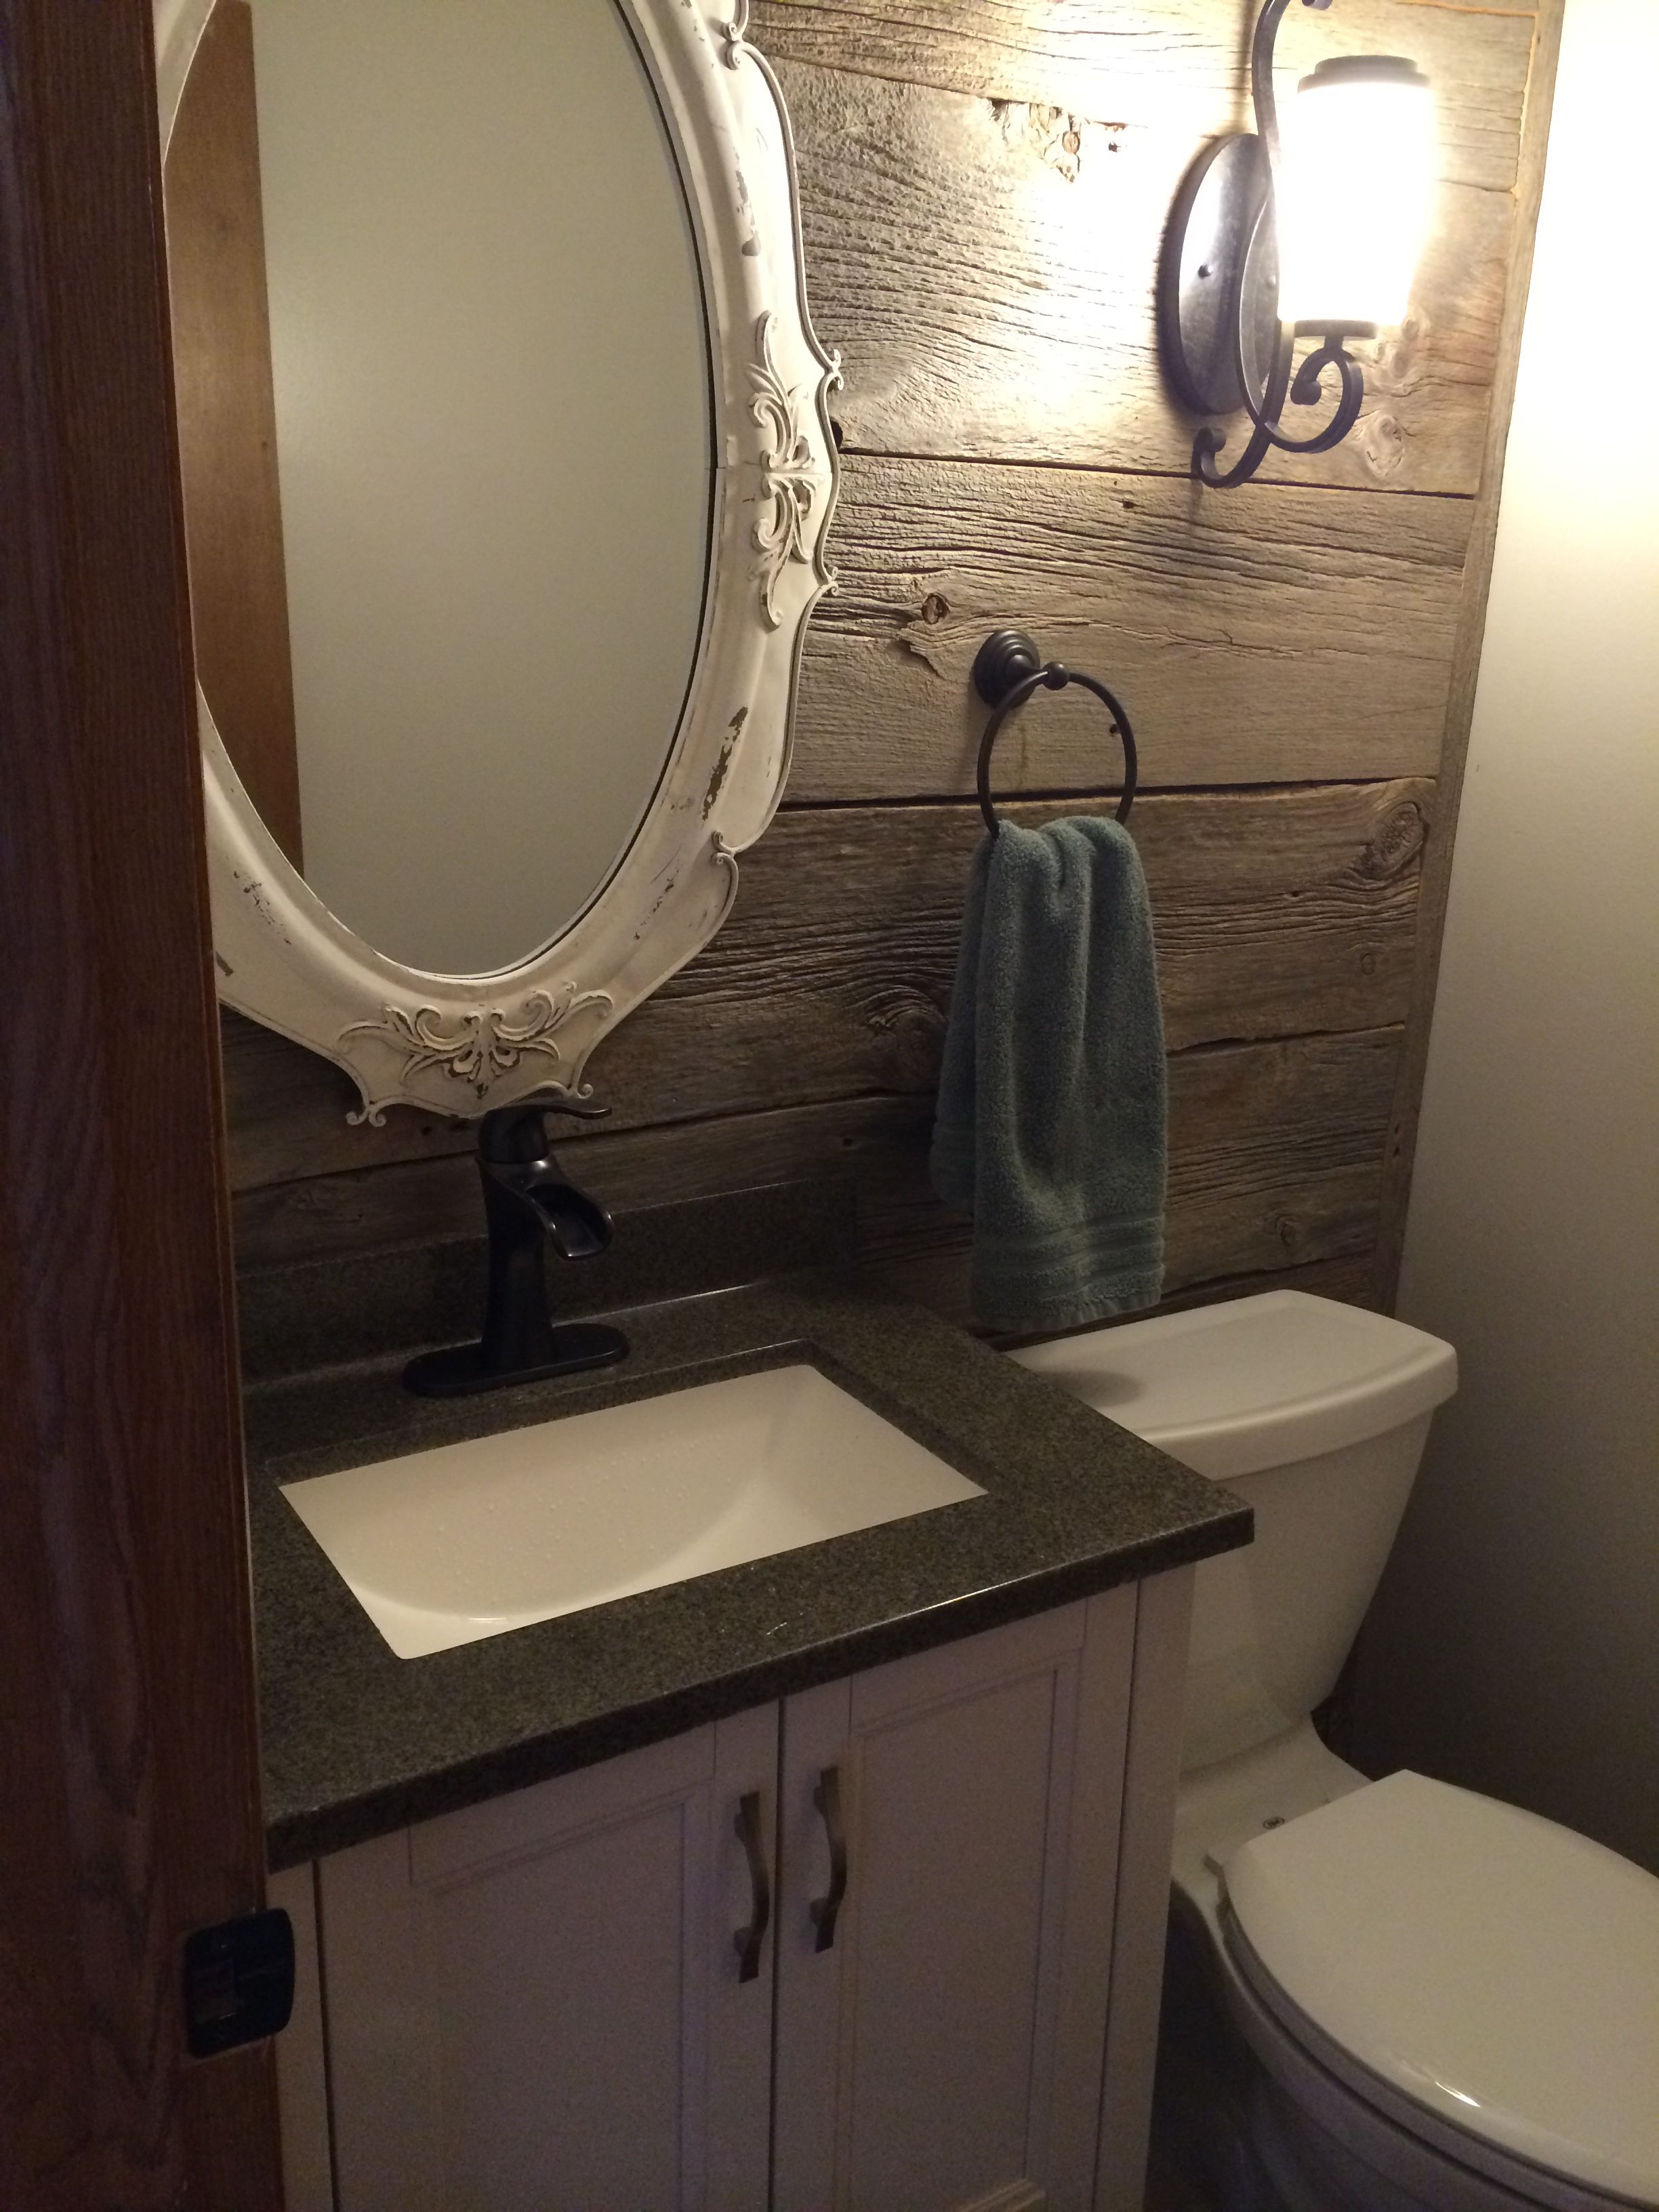 Barn board wall bathroom remodel (With images) | Bathrooms ...